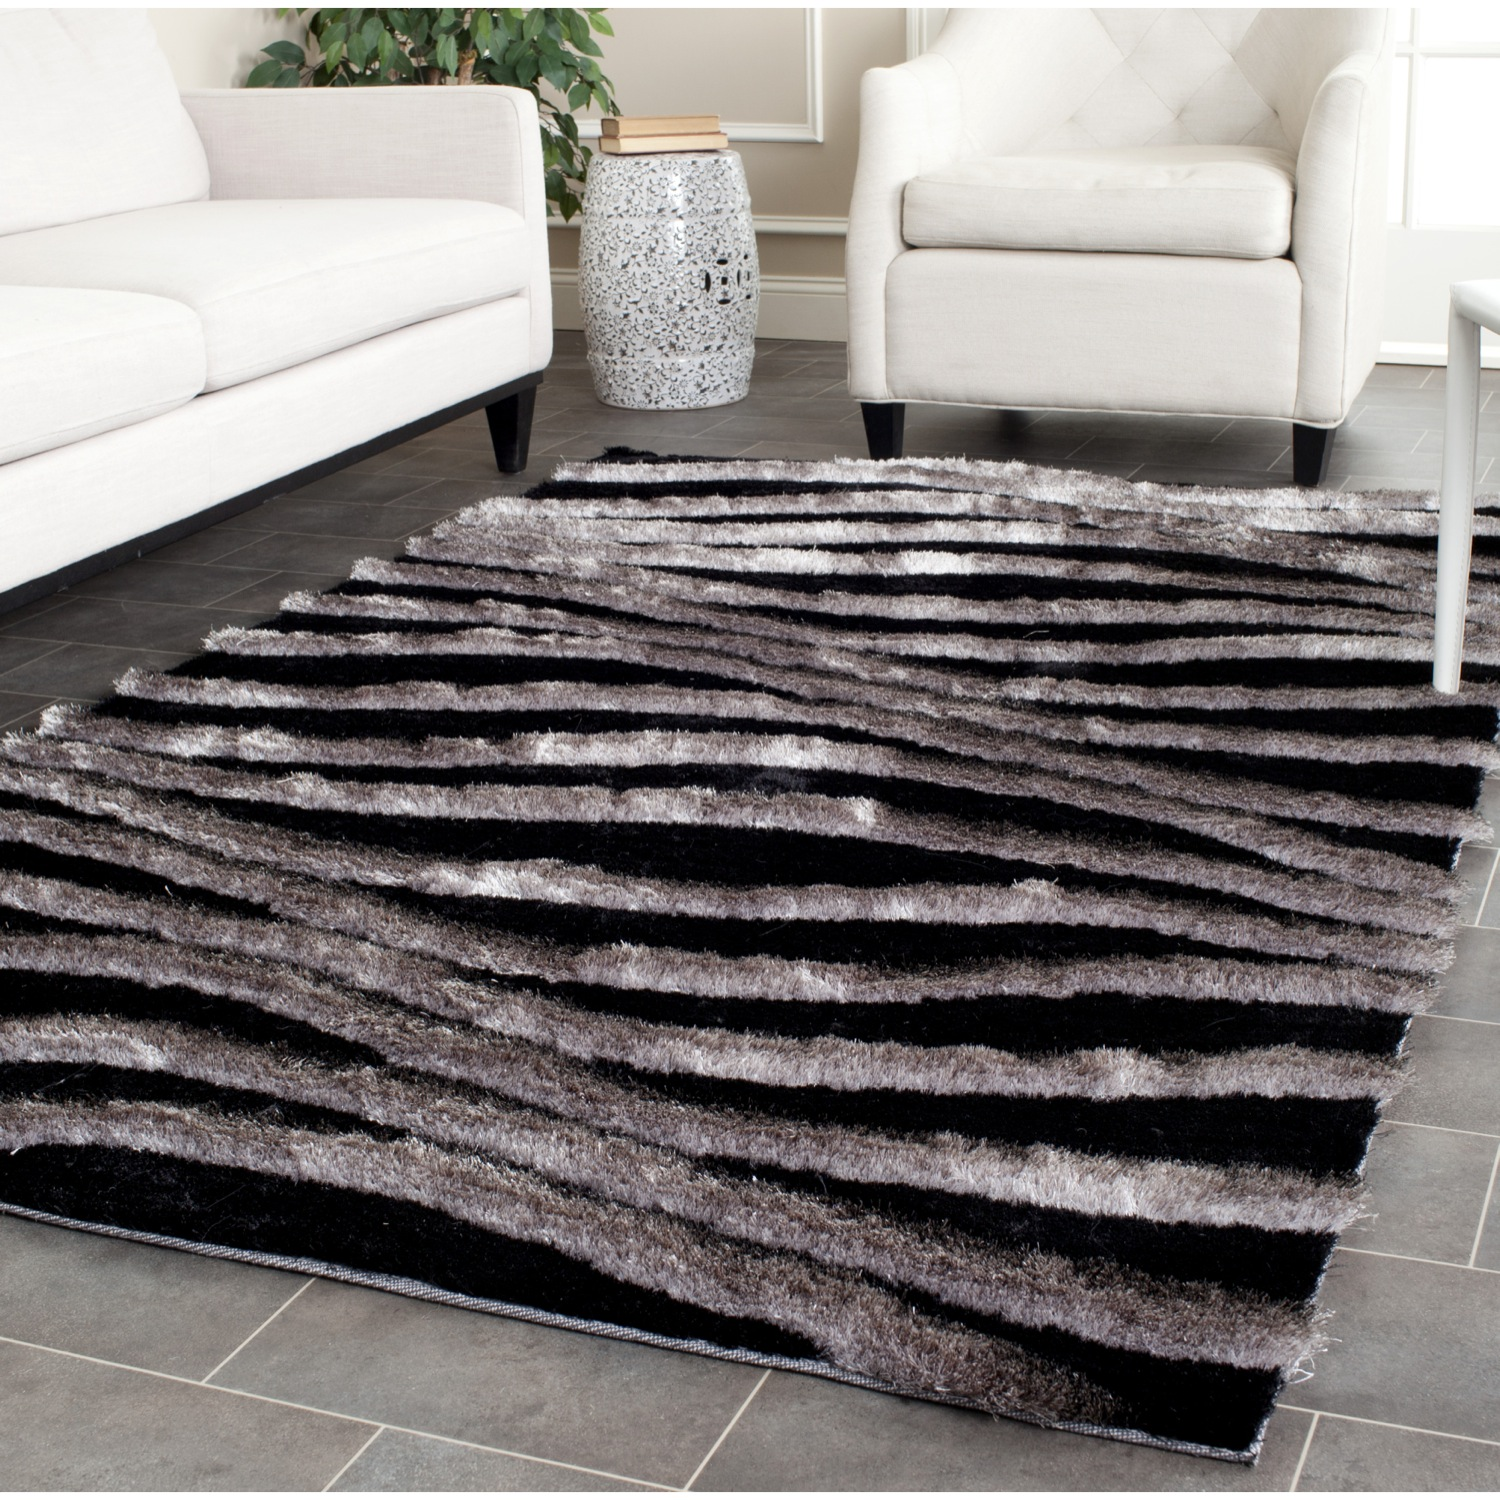 3d black and gray area rugs in awesome pattern for modern living room ideas with white leather sofa and armchair plus subway tile floor